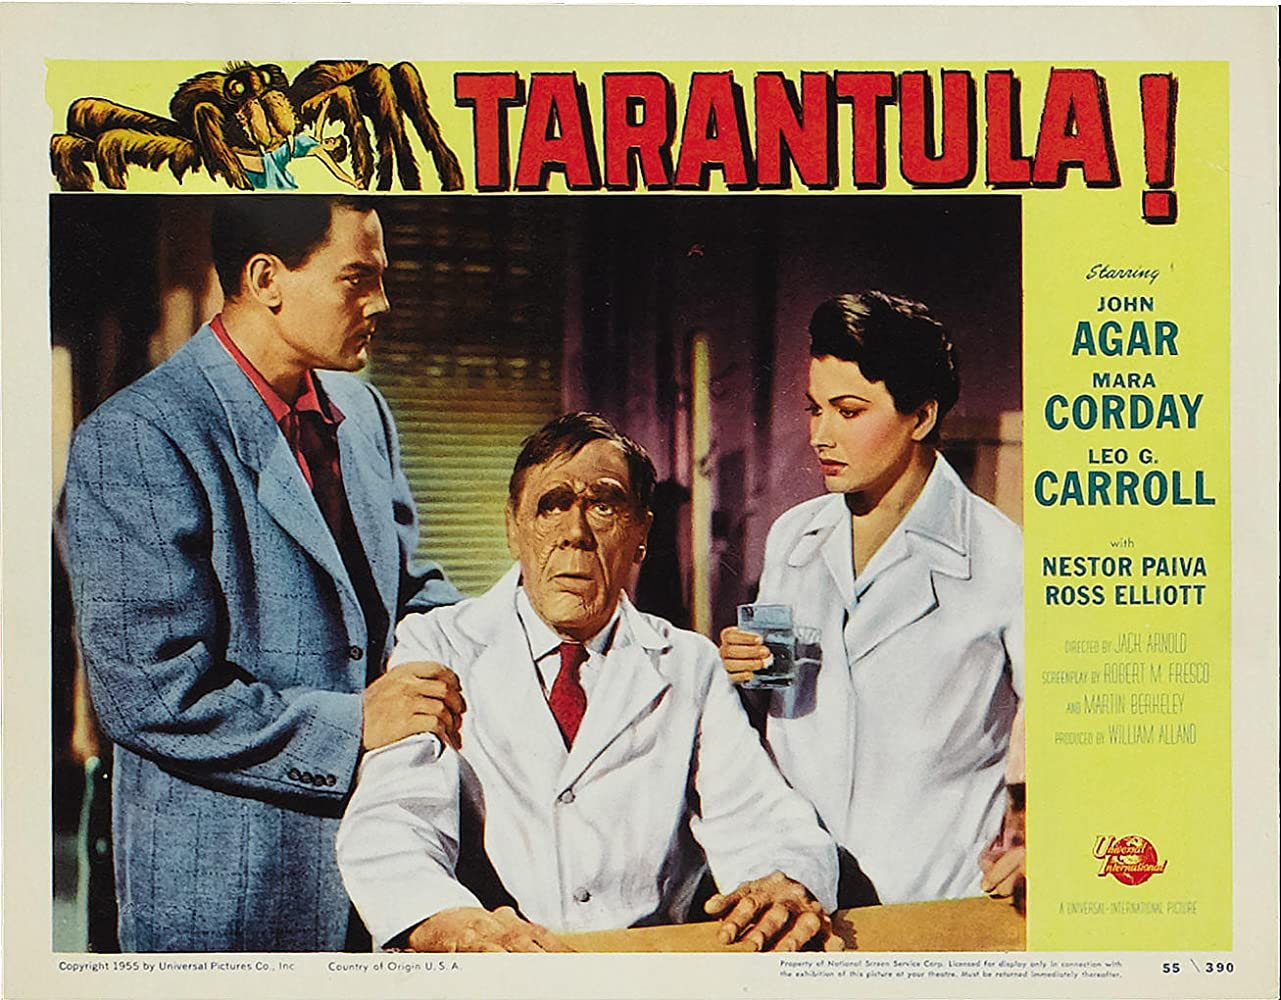 John Agar, Leo G. Carroll, and Mara Corday in Tarantula (1955)